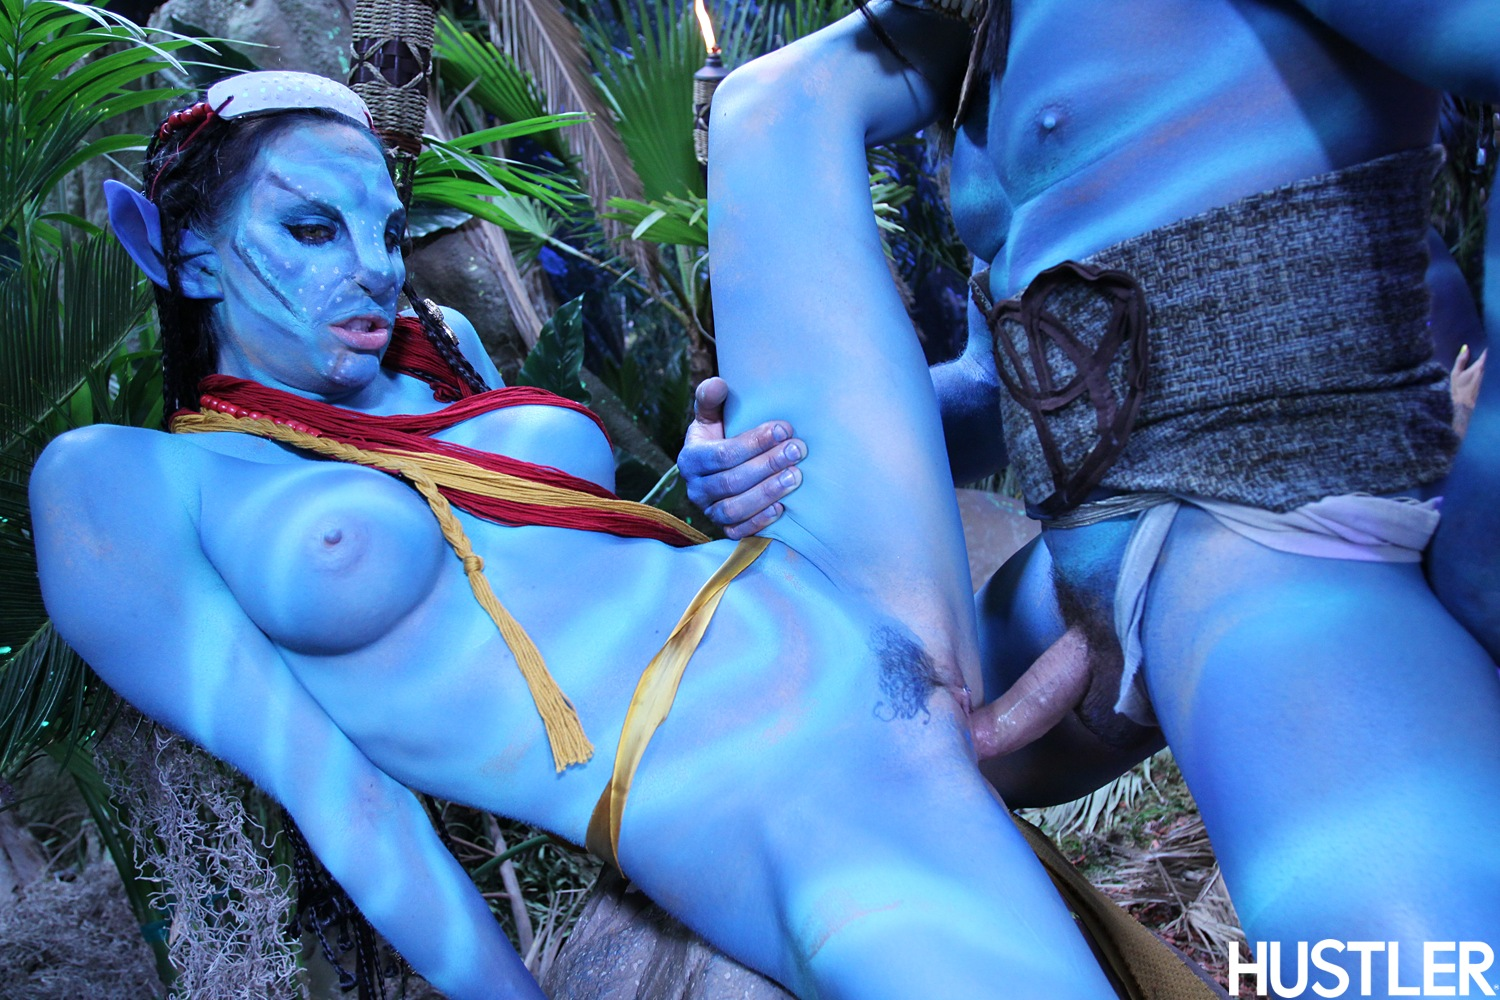 3d avatar xxx photos hd pornos tube